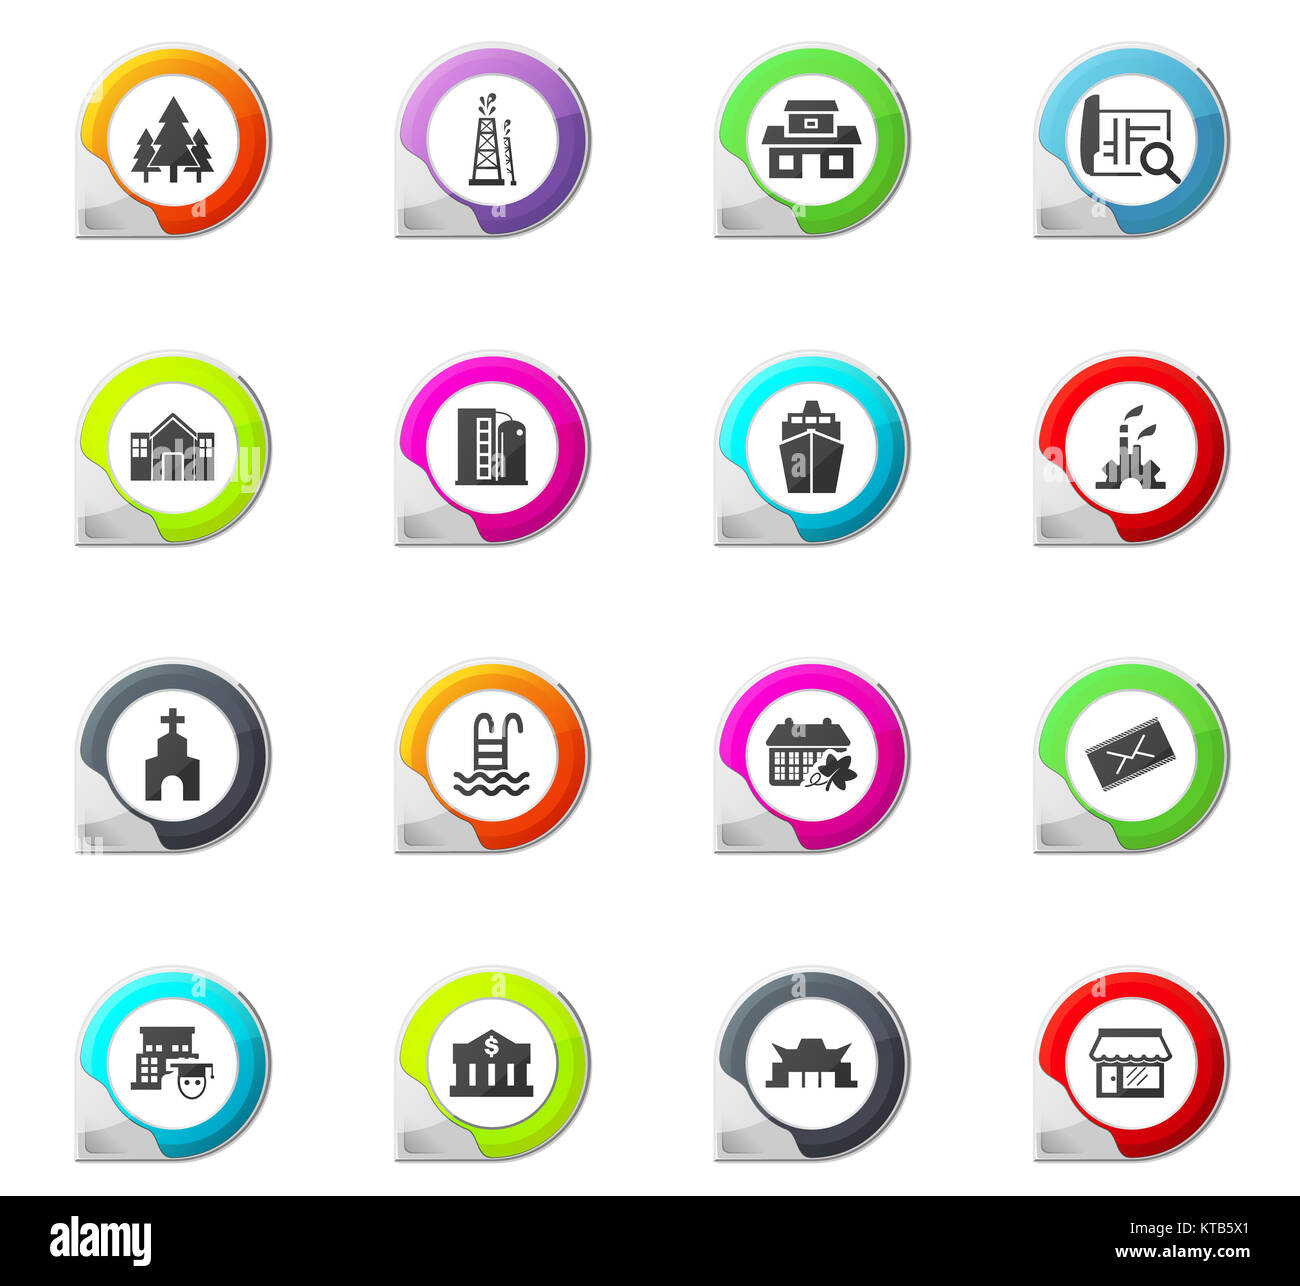 Infrastucture of the city icons set - Stock Image